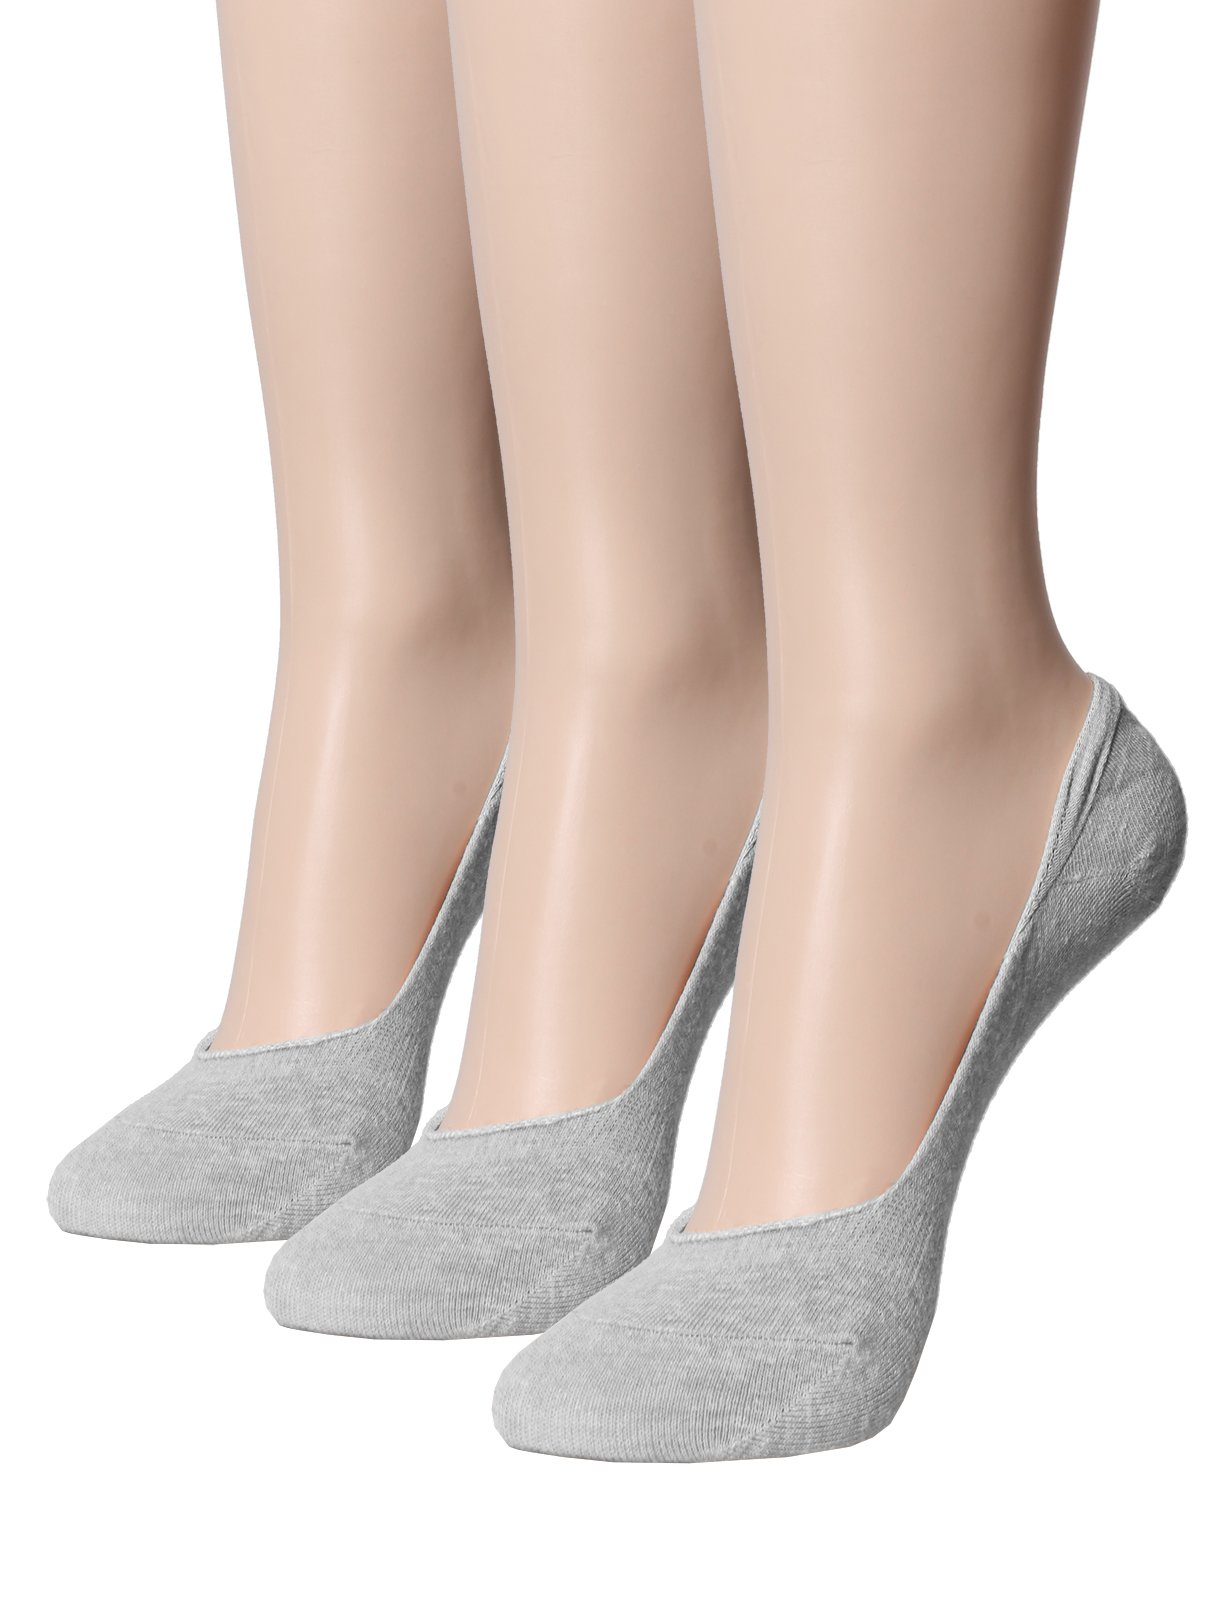 OSABASA Women's 3 Pack Casual Invisible No Show Socks Non Slip(SET3KWMS0241-GRAY)